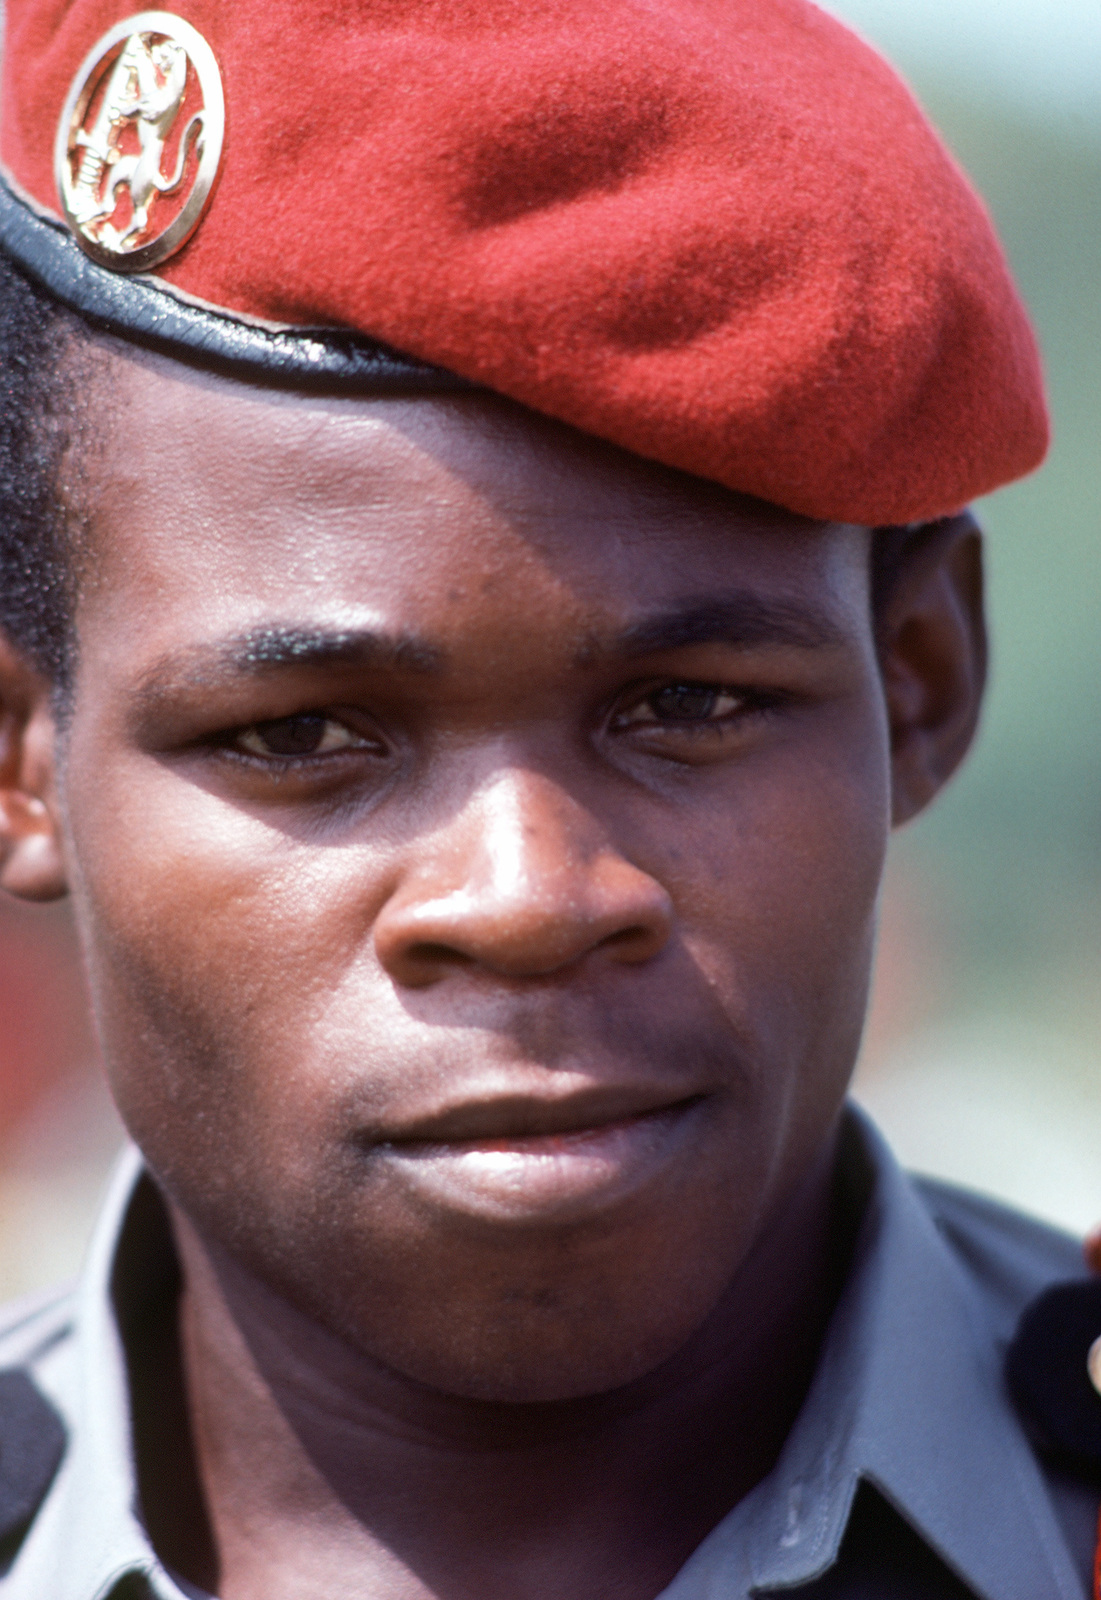 A participant in the Conseil International du Sport Militaire (CISM) poses in his dress uniform during the 31st annual meeting of military athletes from all over the world